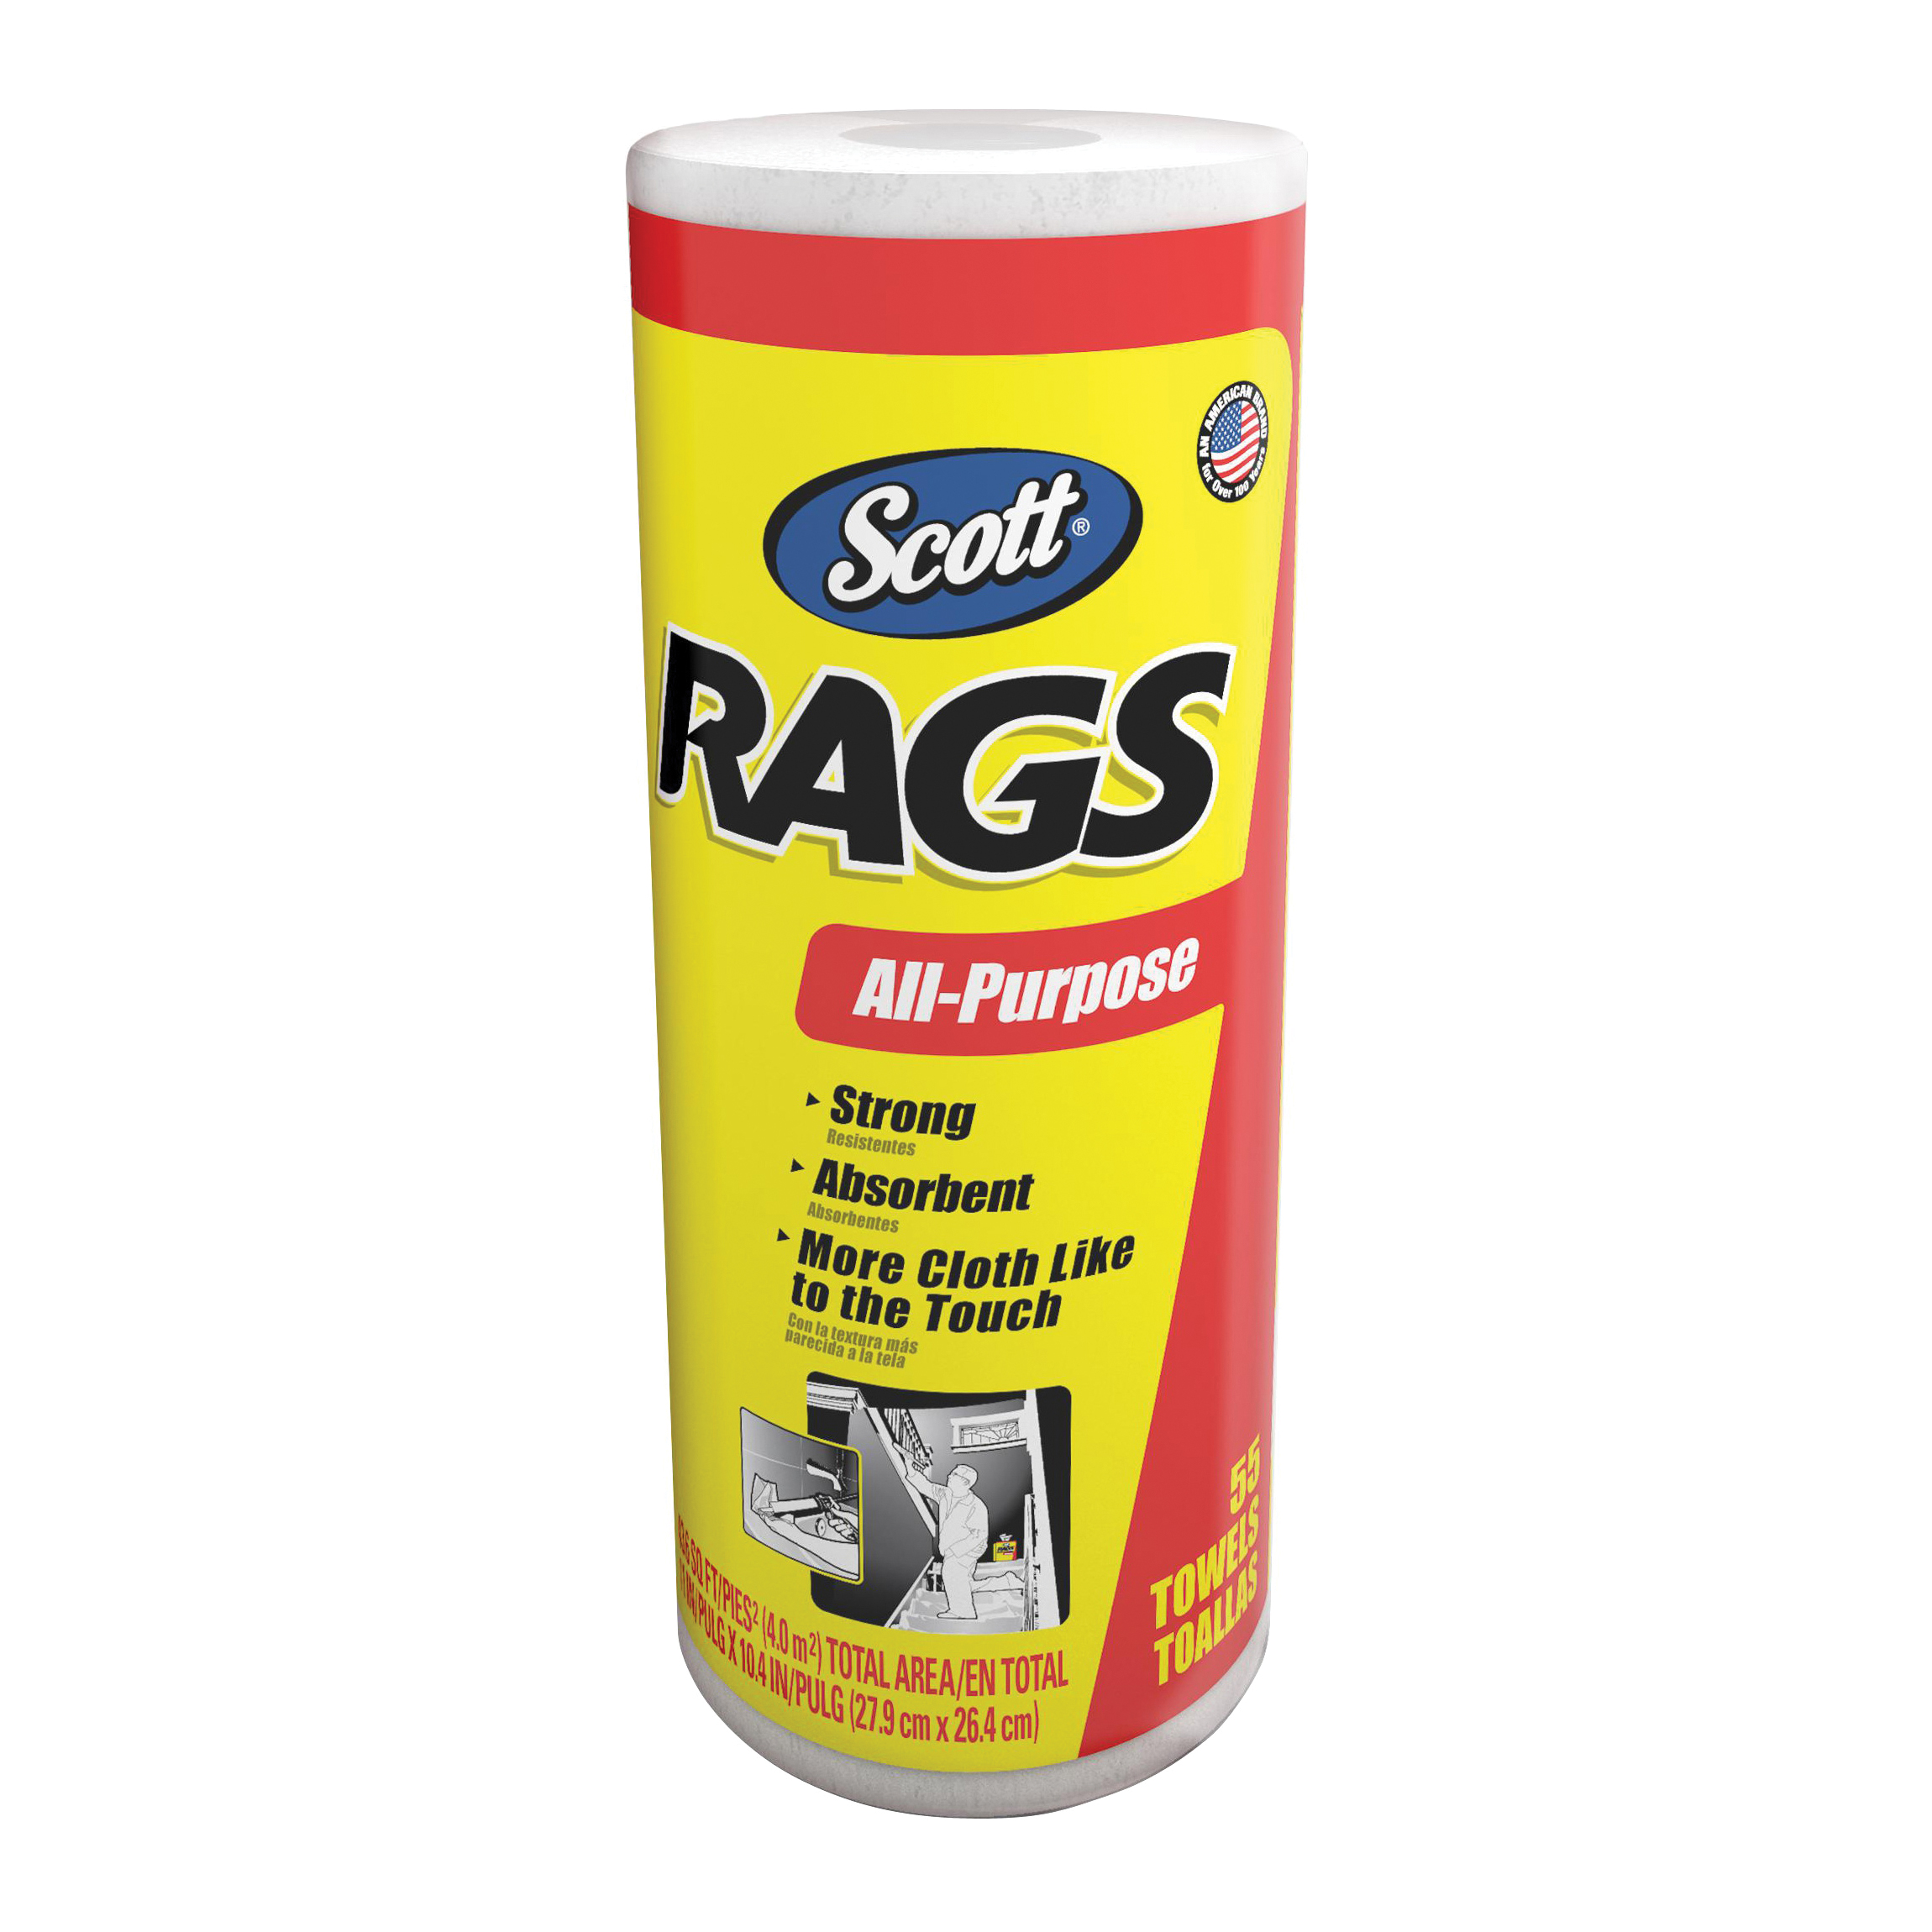 Picture of Scotts 75230 Painter's Rag, 10.4 x 11 in, Cellulose Fiber, White, Roll